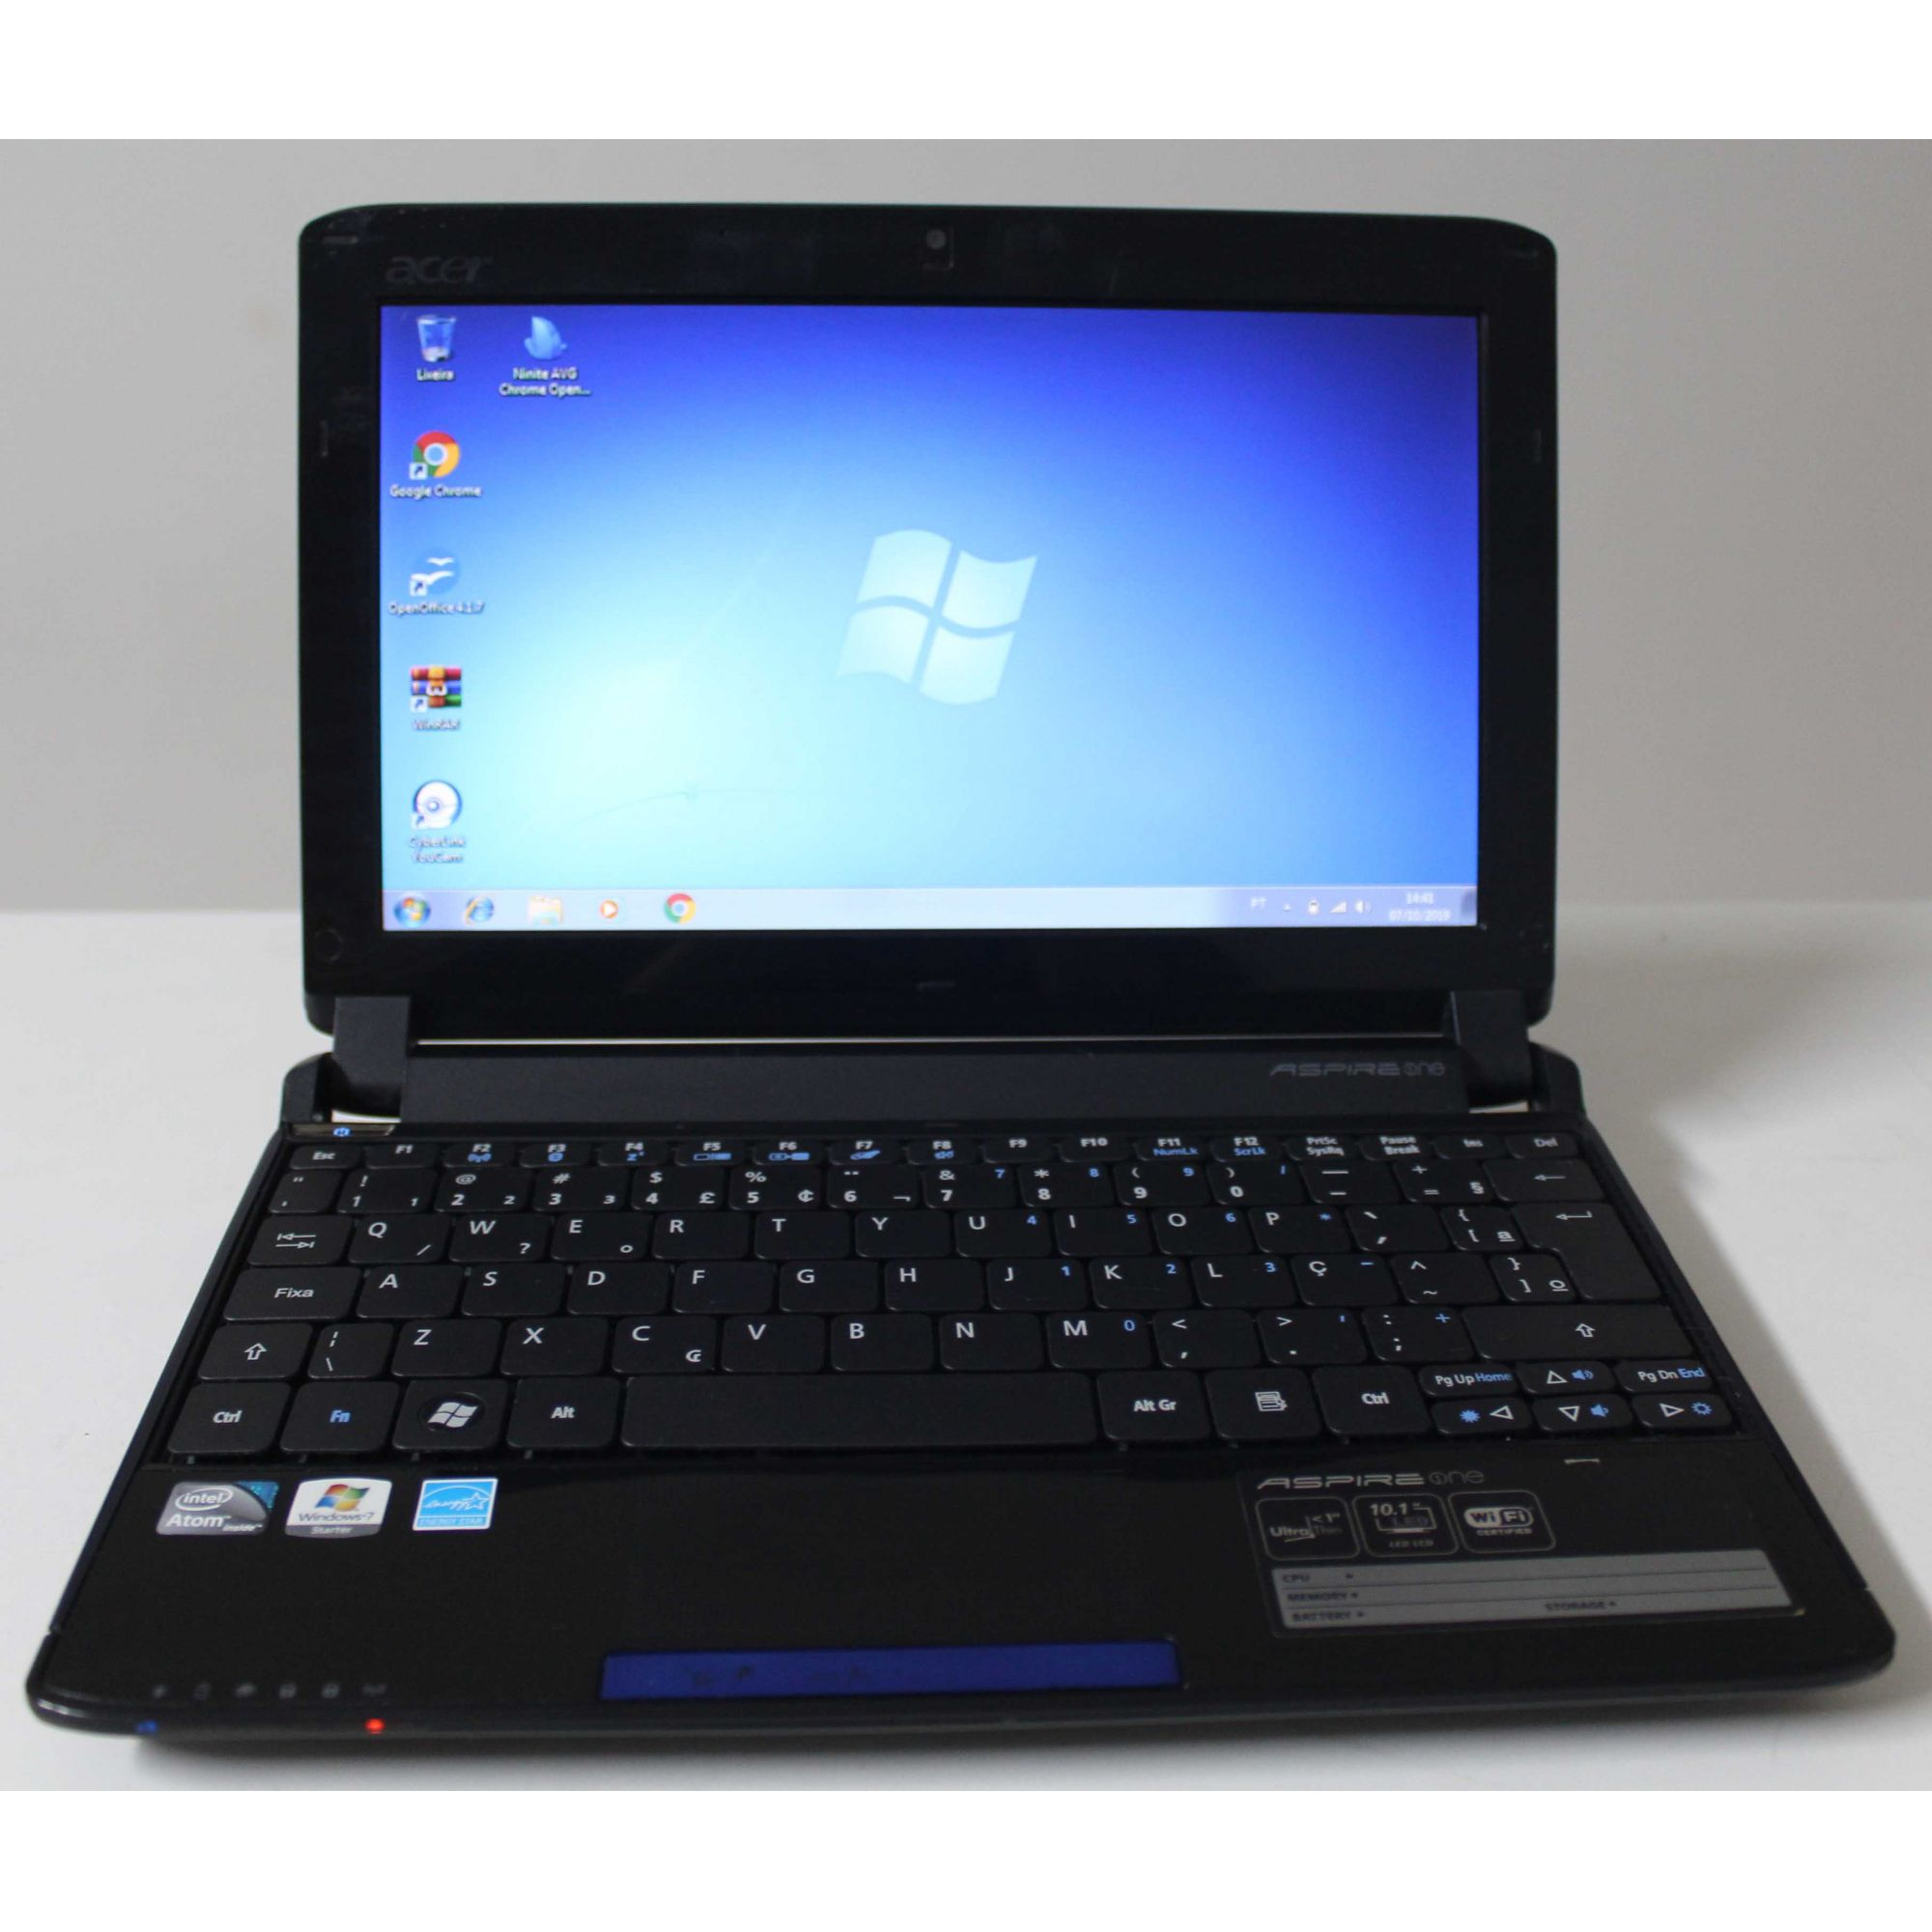 "Netbook Acer Aspire One NAV50 10.1"" Intel Atom 1.66GHz 2GB HD-160GB"